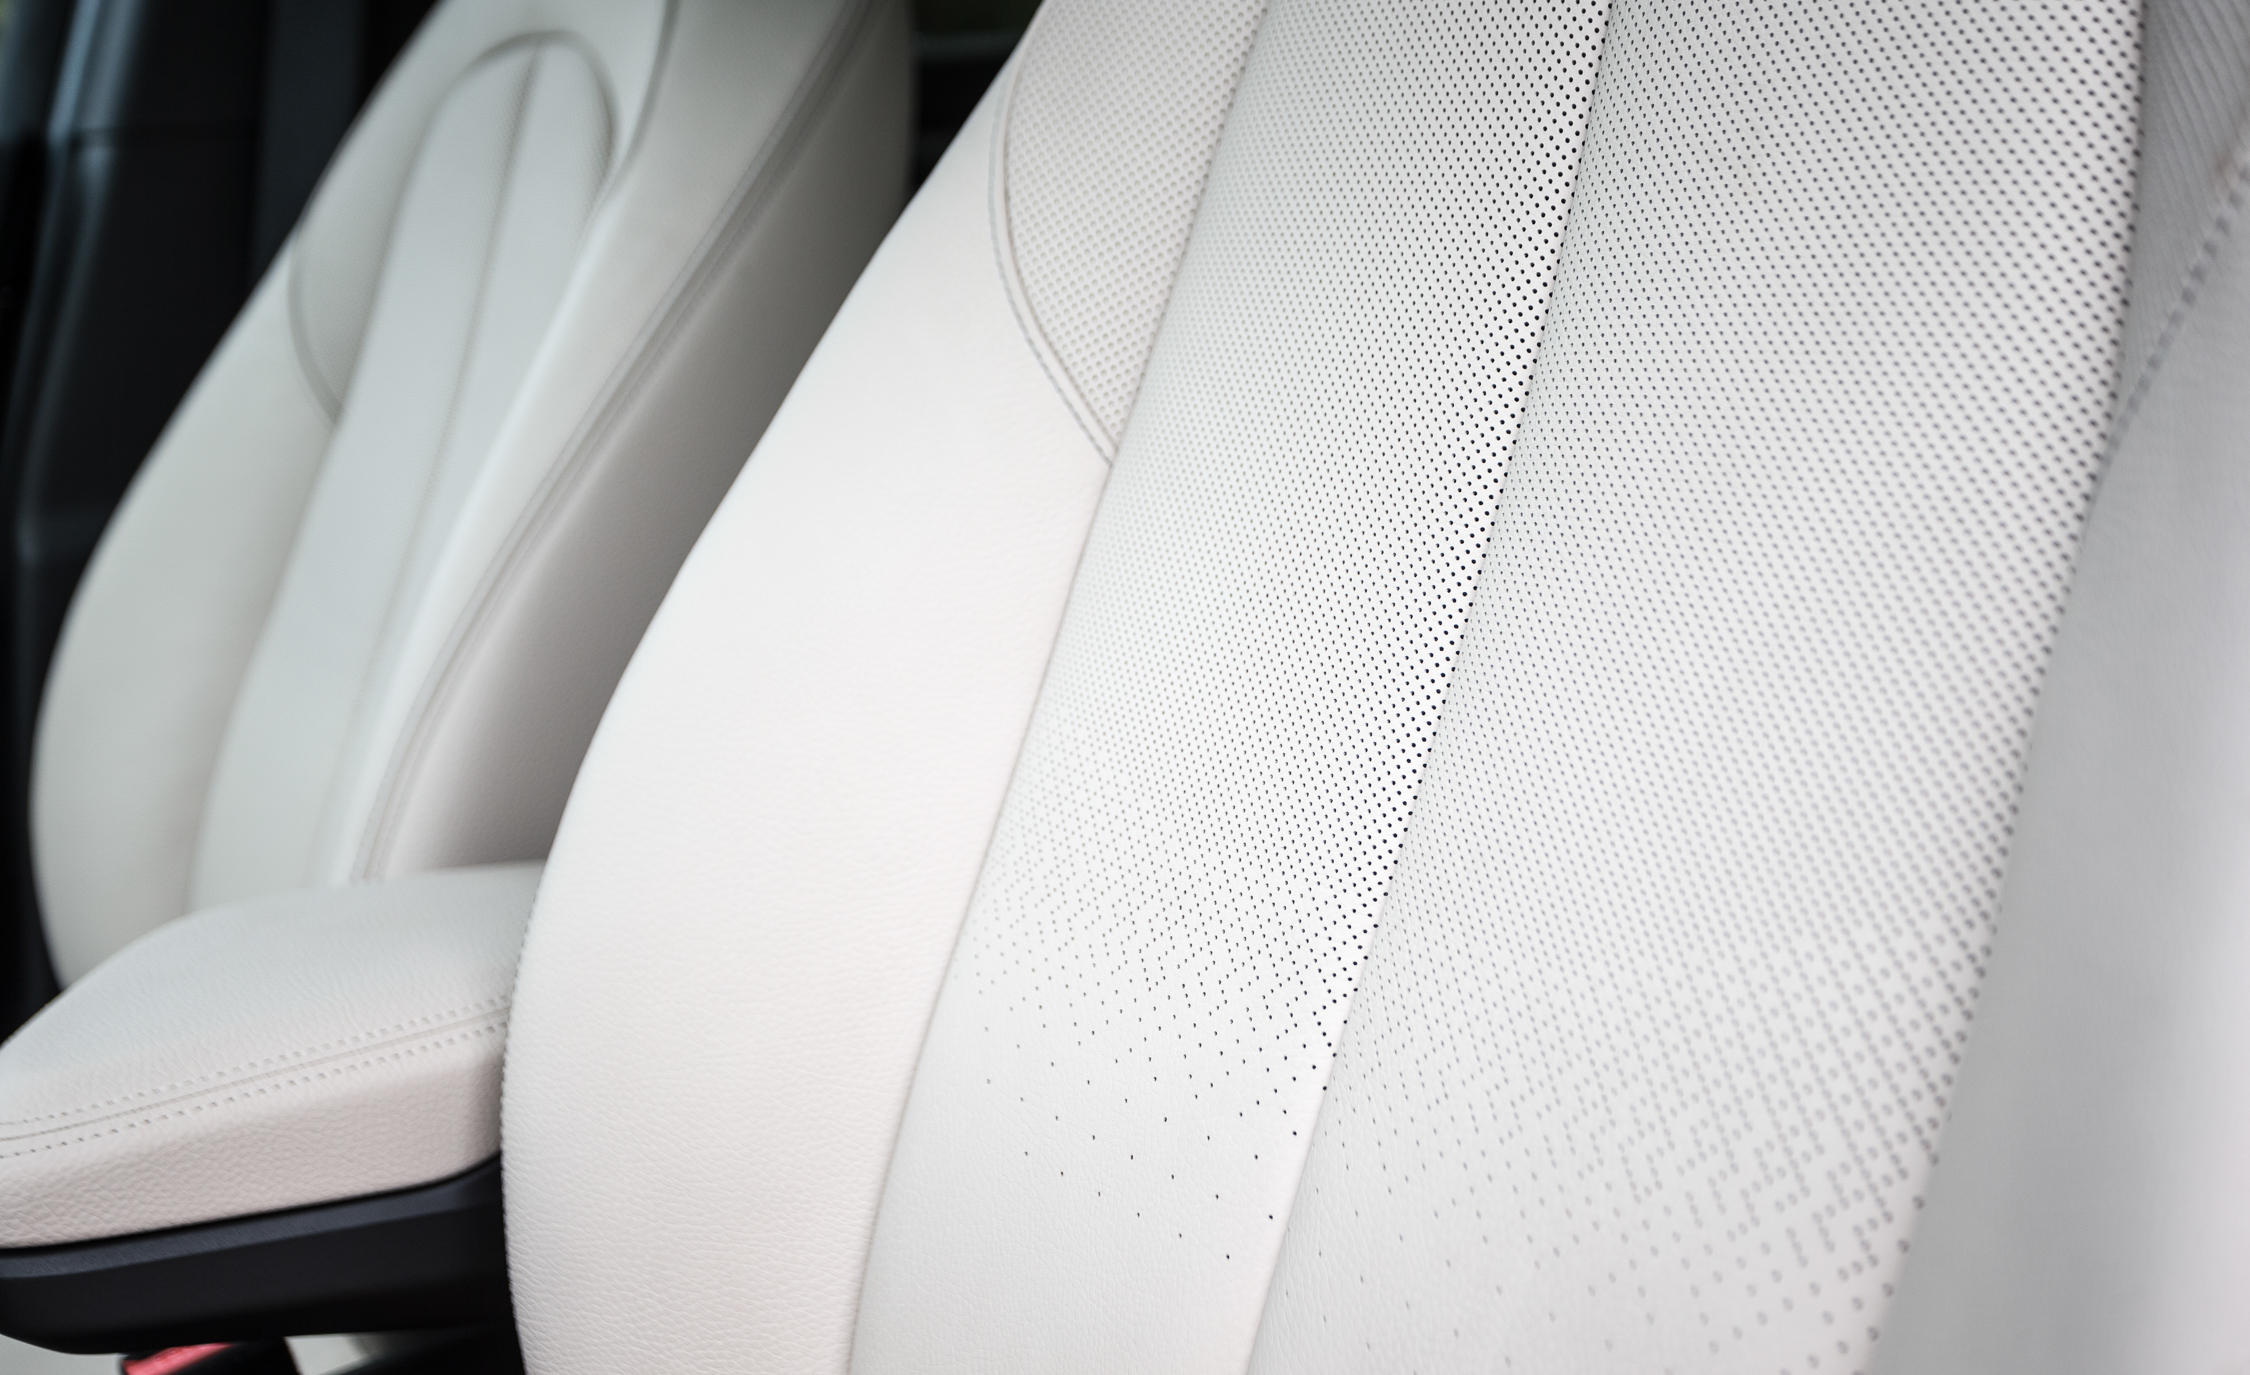 2016 BMW X1 Interior Seats Front Leather Details (View 22 of 36)